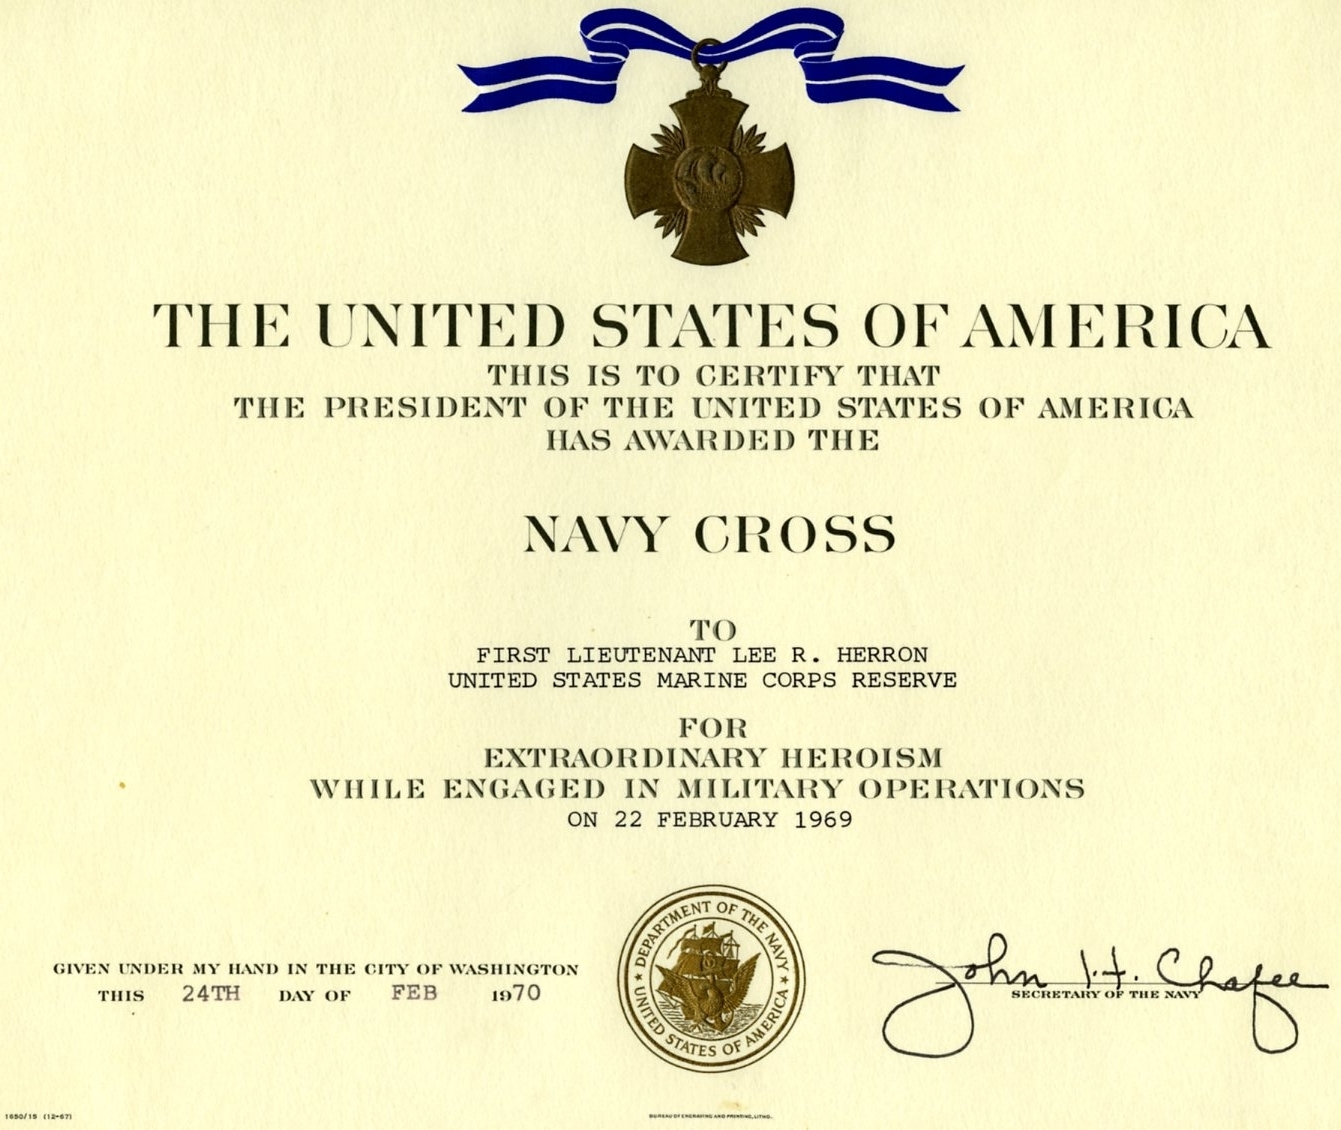 Lee Roy Herron's Navy Cross certificate